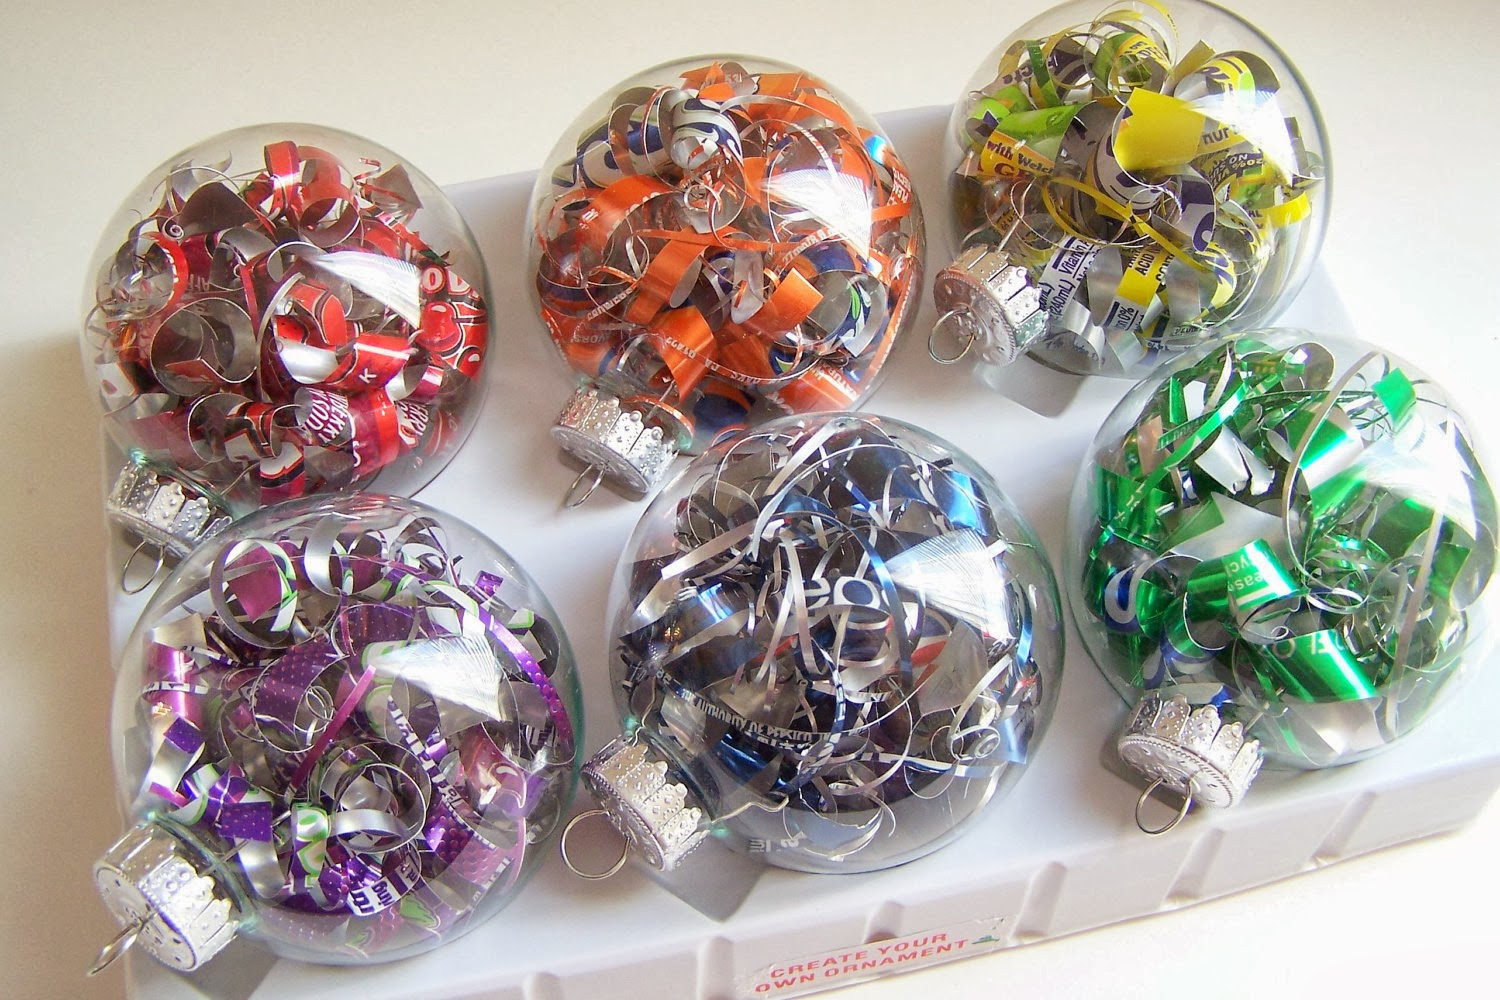 Best Of How to Recycle Recycled Christmas Tree ornaments ornaments On Christmas Tree Of Delightful 46 Images ornaments On Christmas Tree